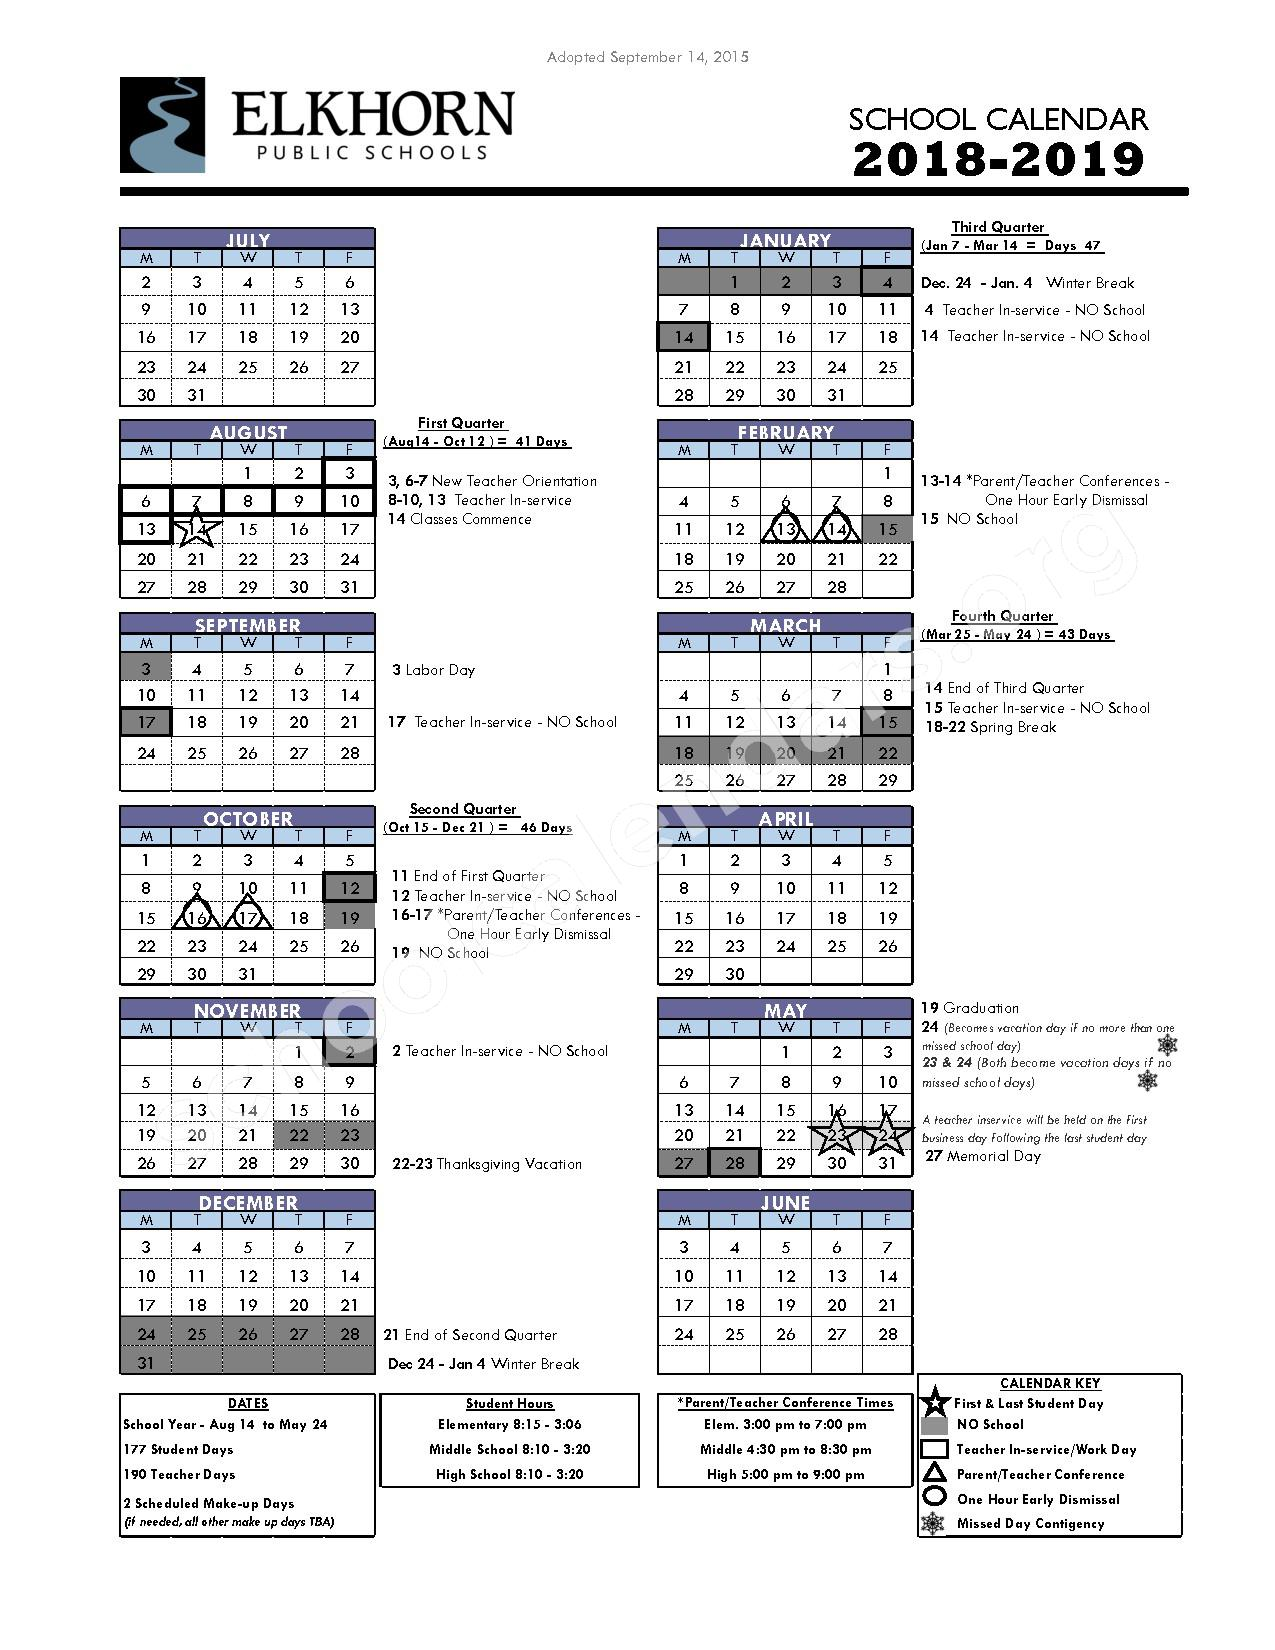 2018 - 2019 District Calendar – Hillrise Elementary School – page 1